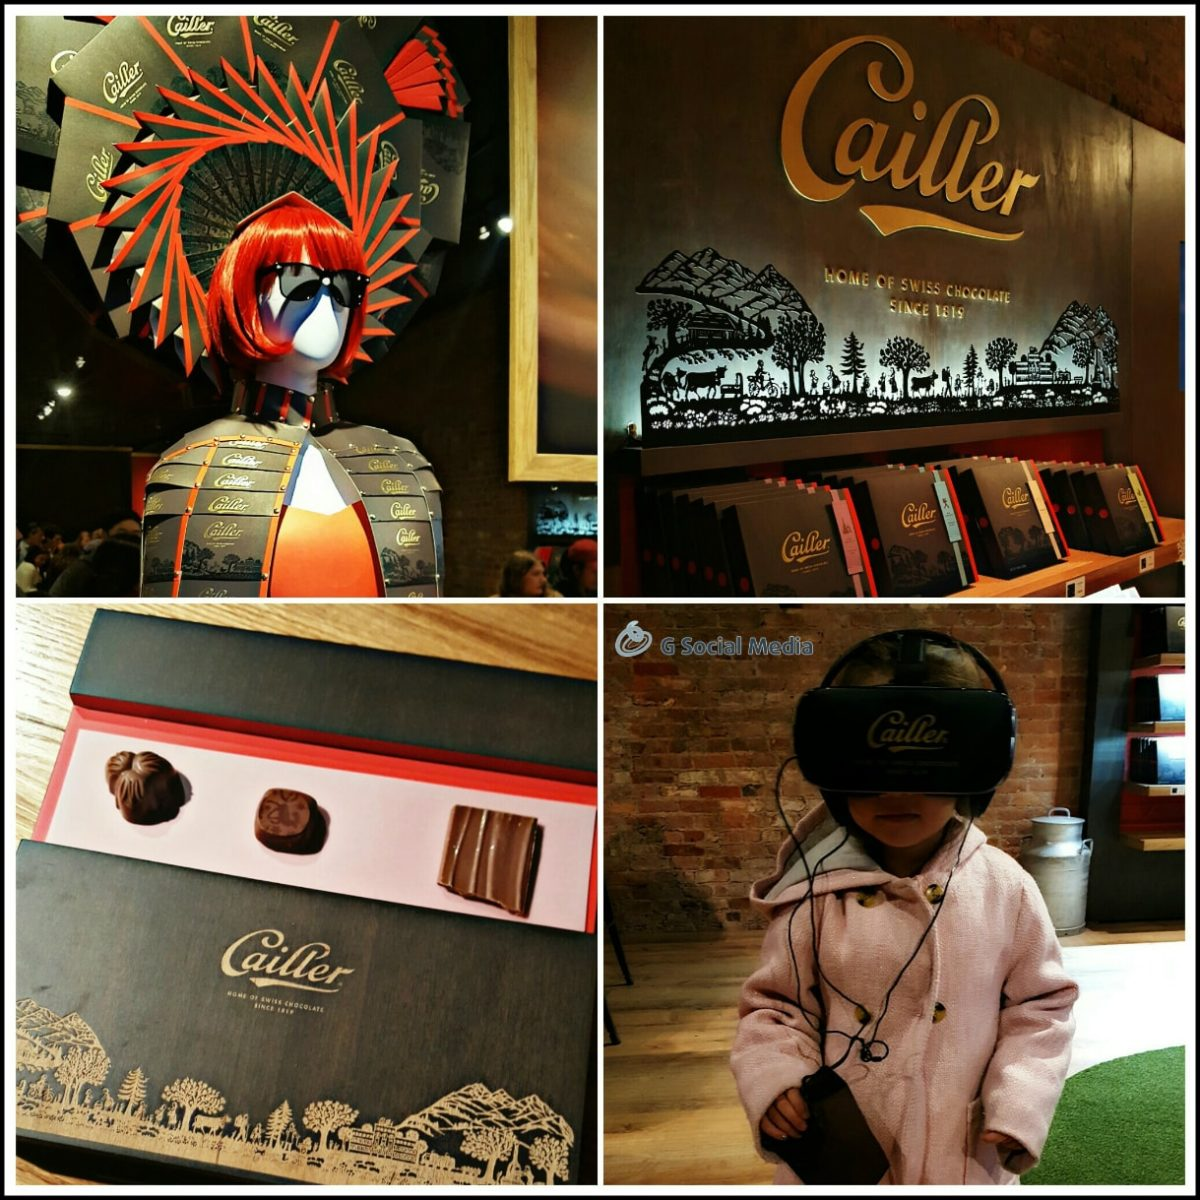 Cailler Chocolate NYC